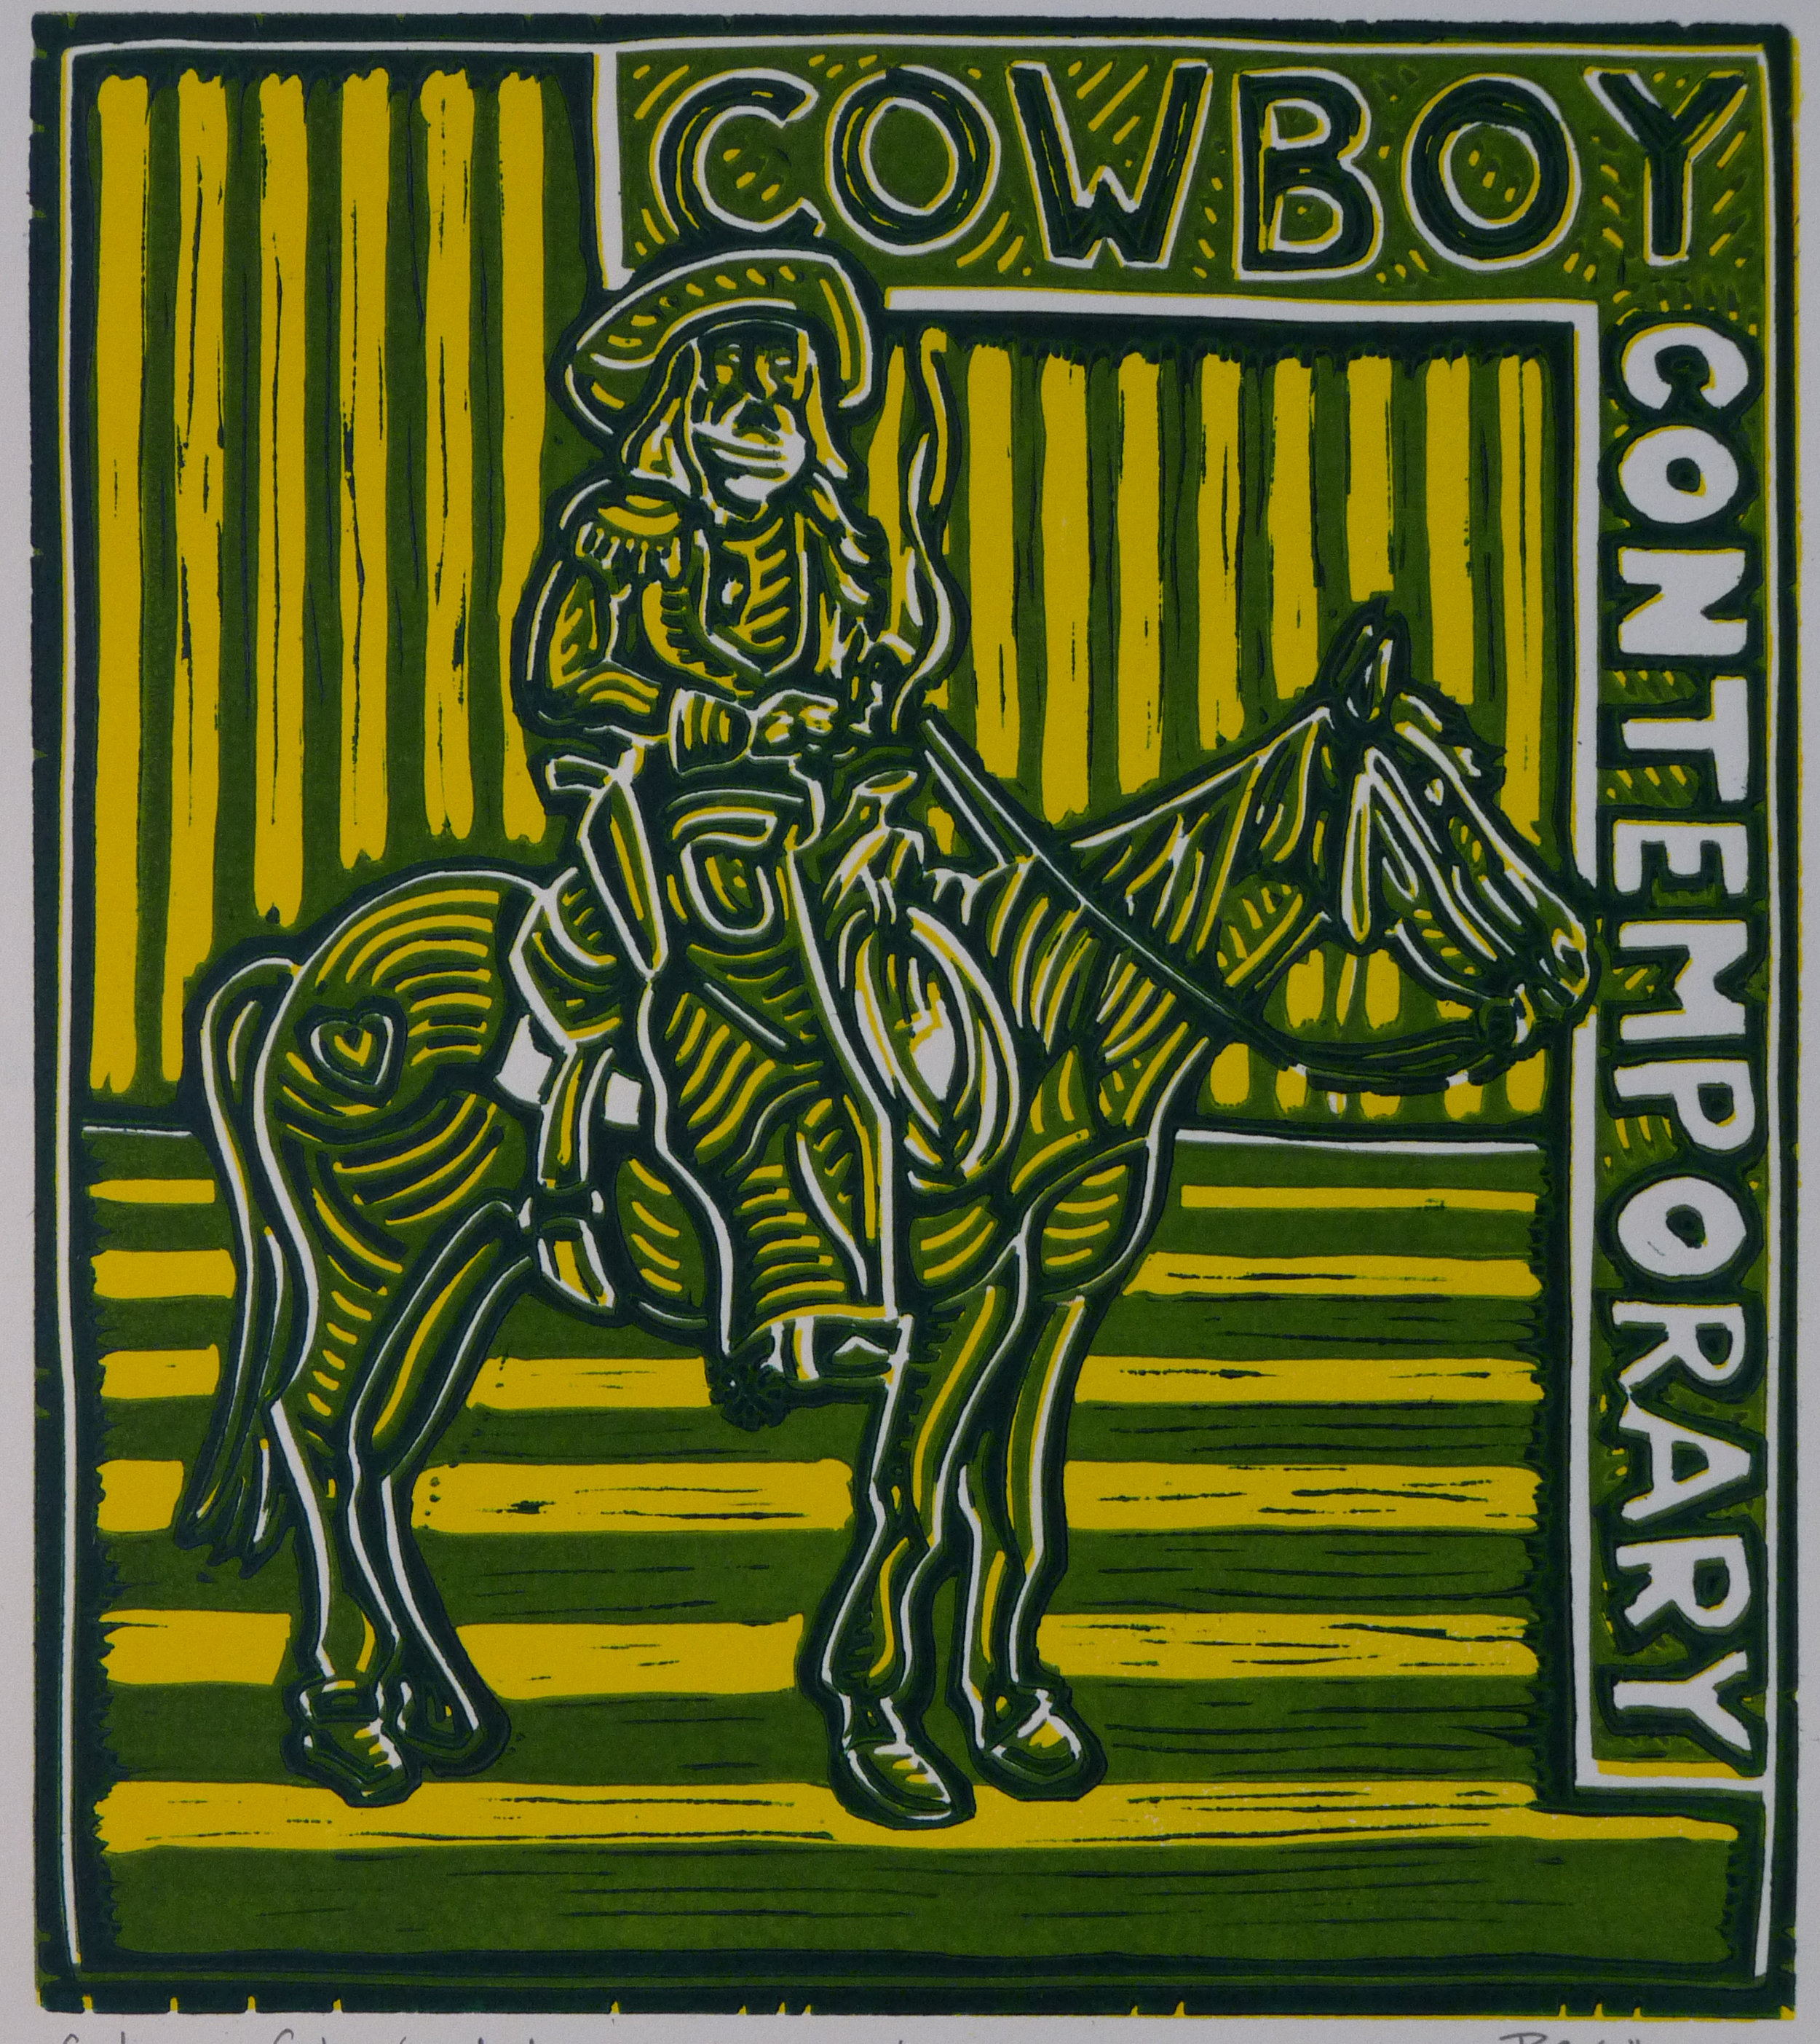 Contemporary Cowboy, Green Apple 2014